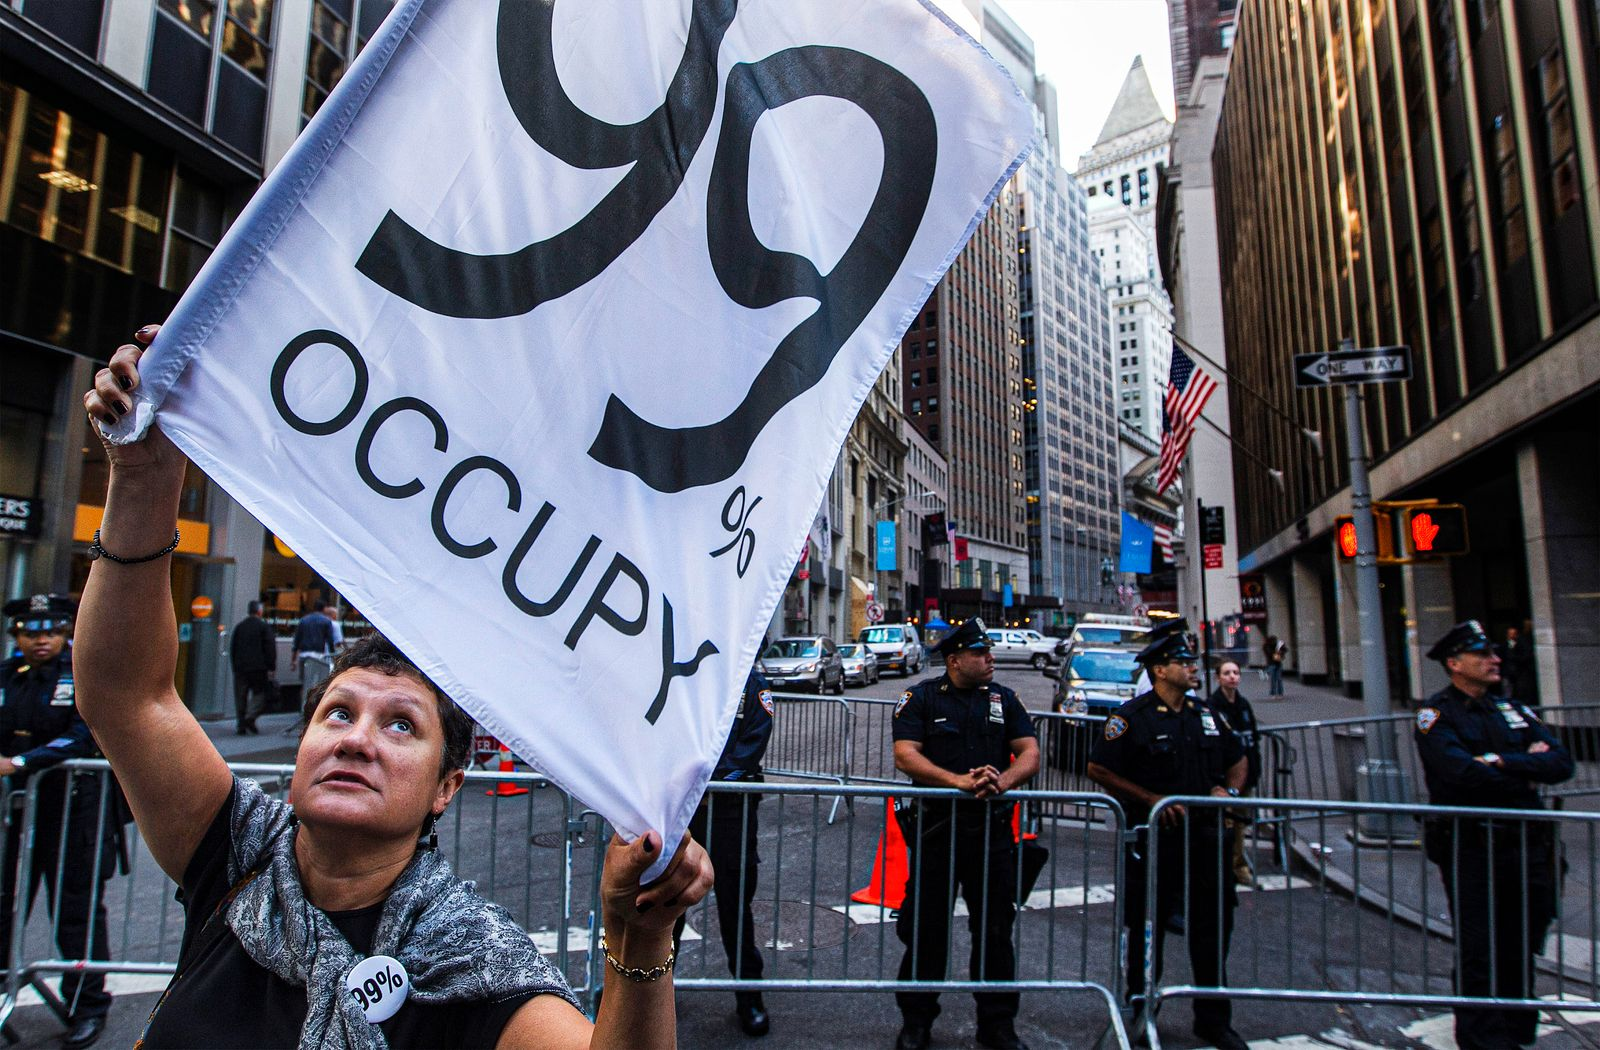 A Occupy Wall Street activist marches with demonstrators through the financial district during the one-year anniversary of the movement in New York